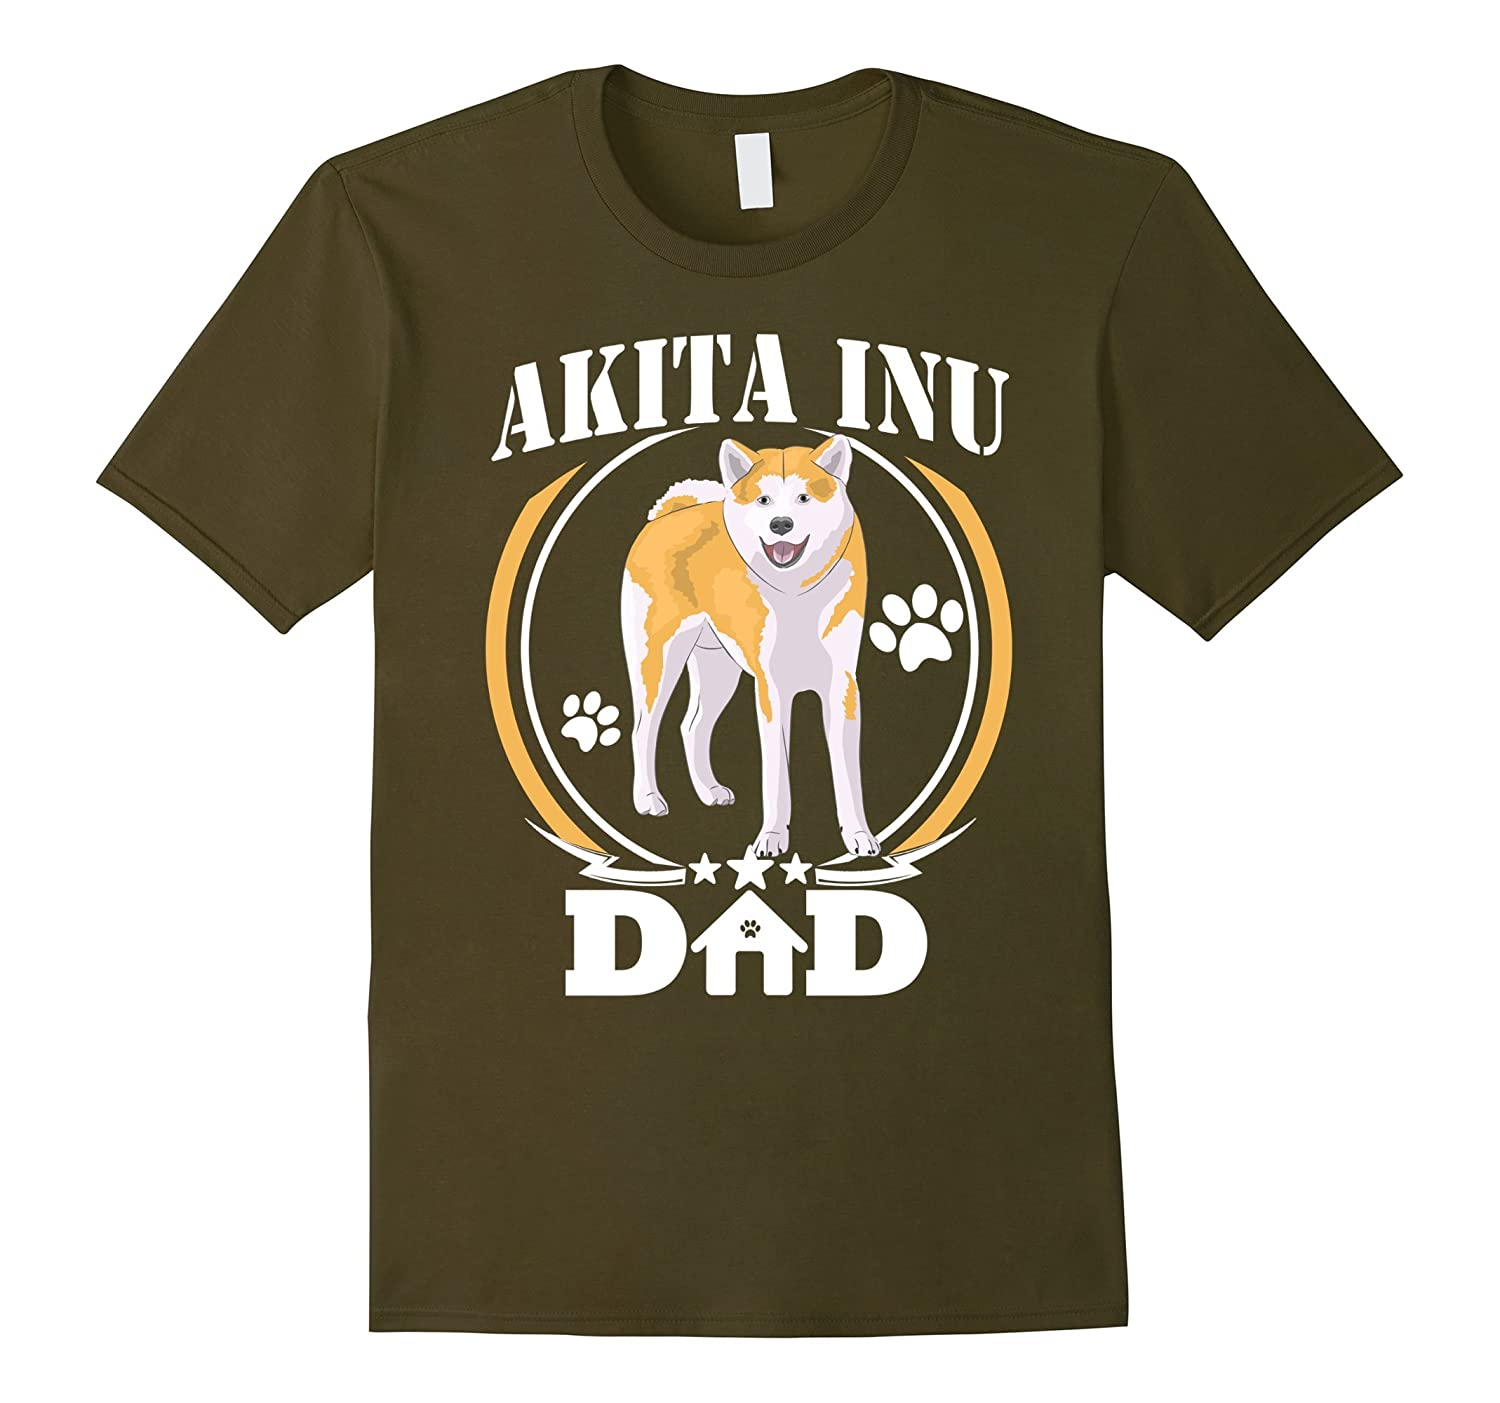 Mens Akita Inu Dad T-shirt Best Dog Dad Ever Birthday Gifts Idea-ah